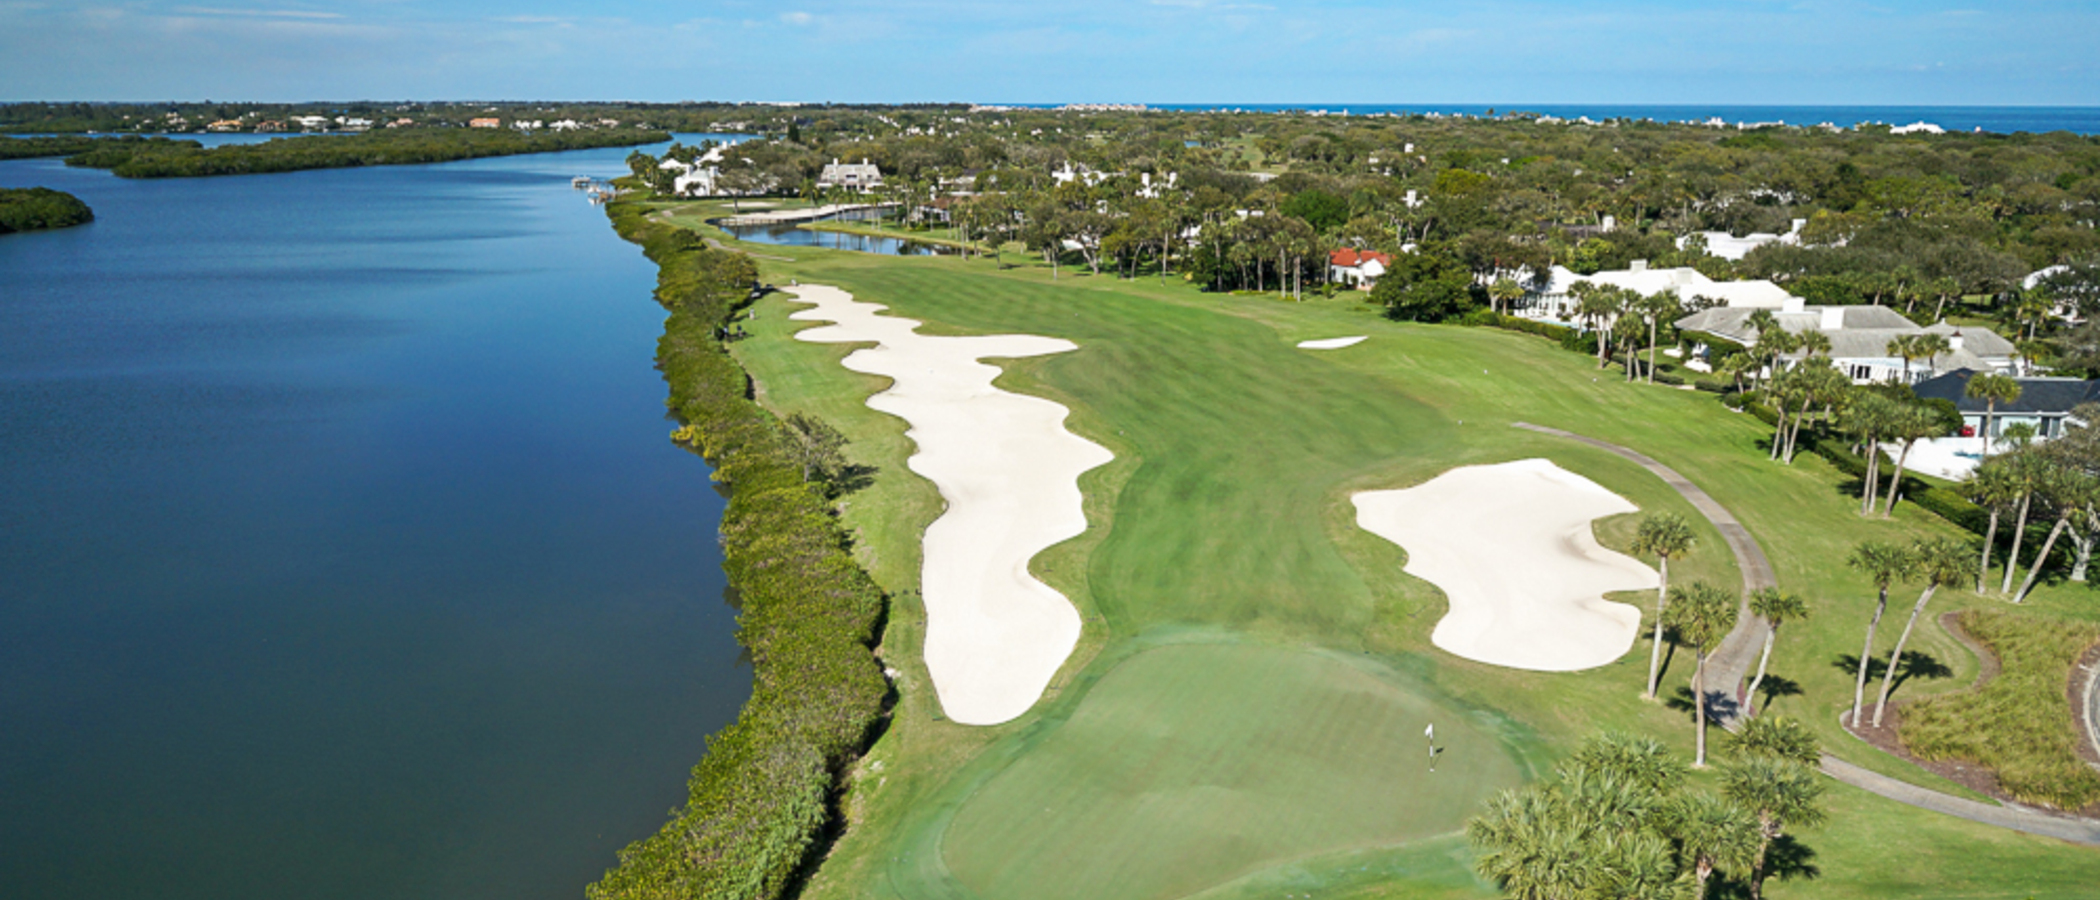 The Beautiful Vero Beach Golf Course